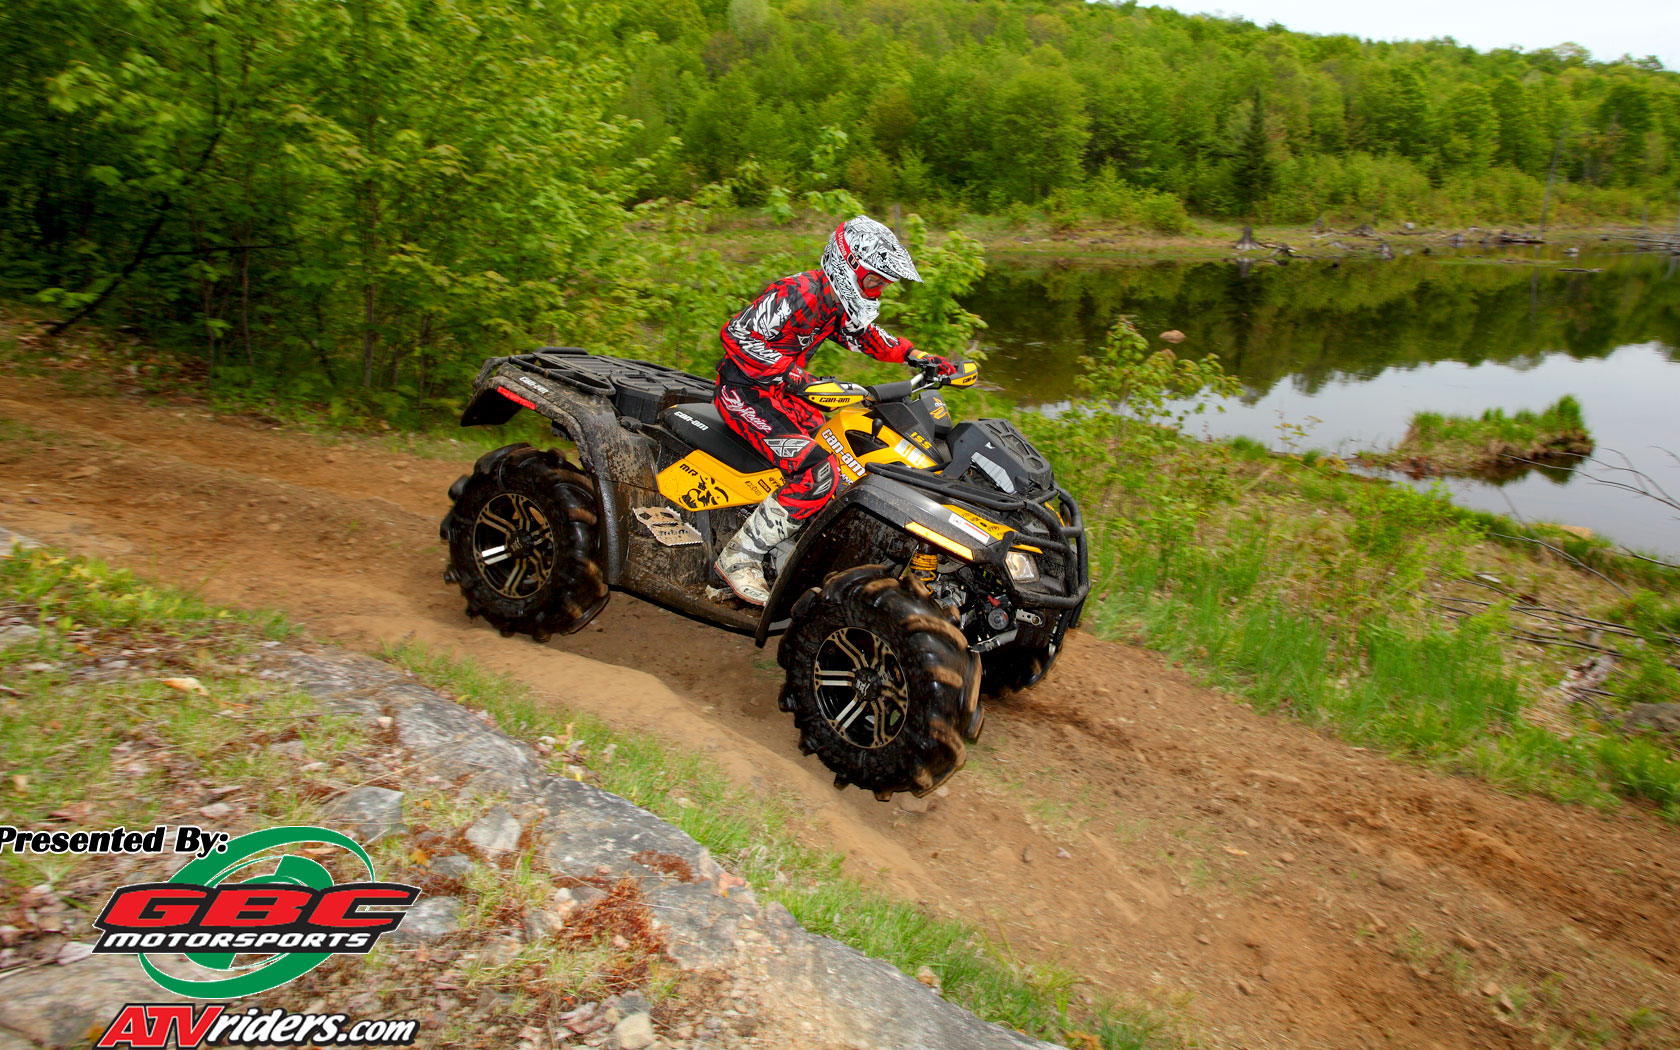 Outlander 800R X mr Mud Performance 4x4 ATV   Wednesday Wallpapers 1680x1050